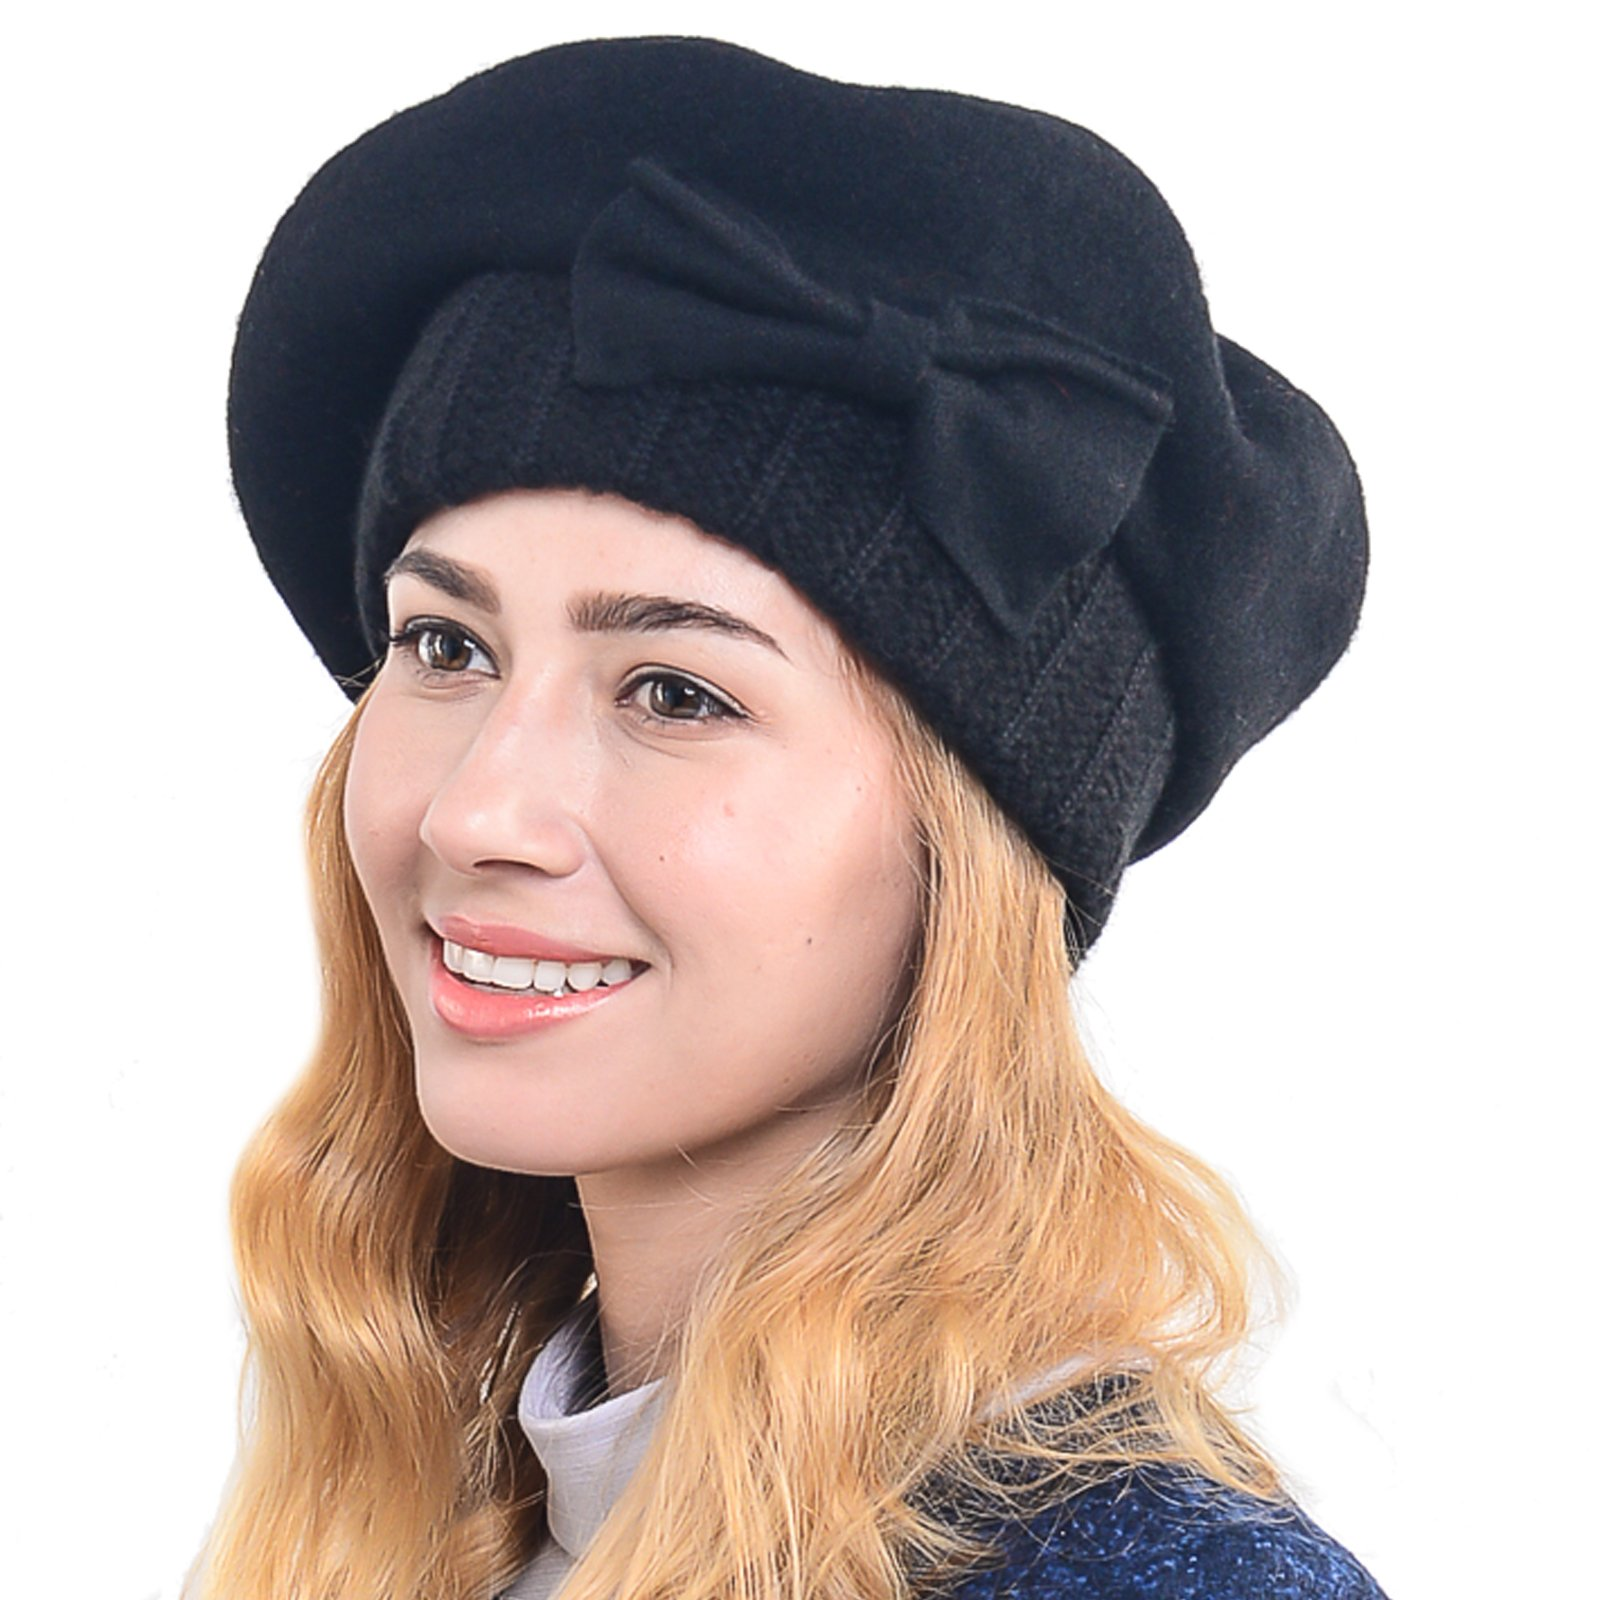 Women's French Beret - 100% Wool Cloche Hat - Beret Beanie for Winter C020 (Hy022-Black)